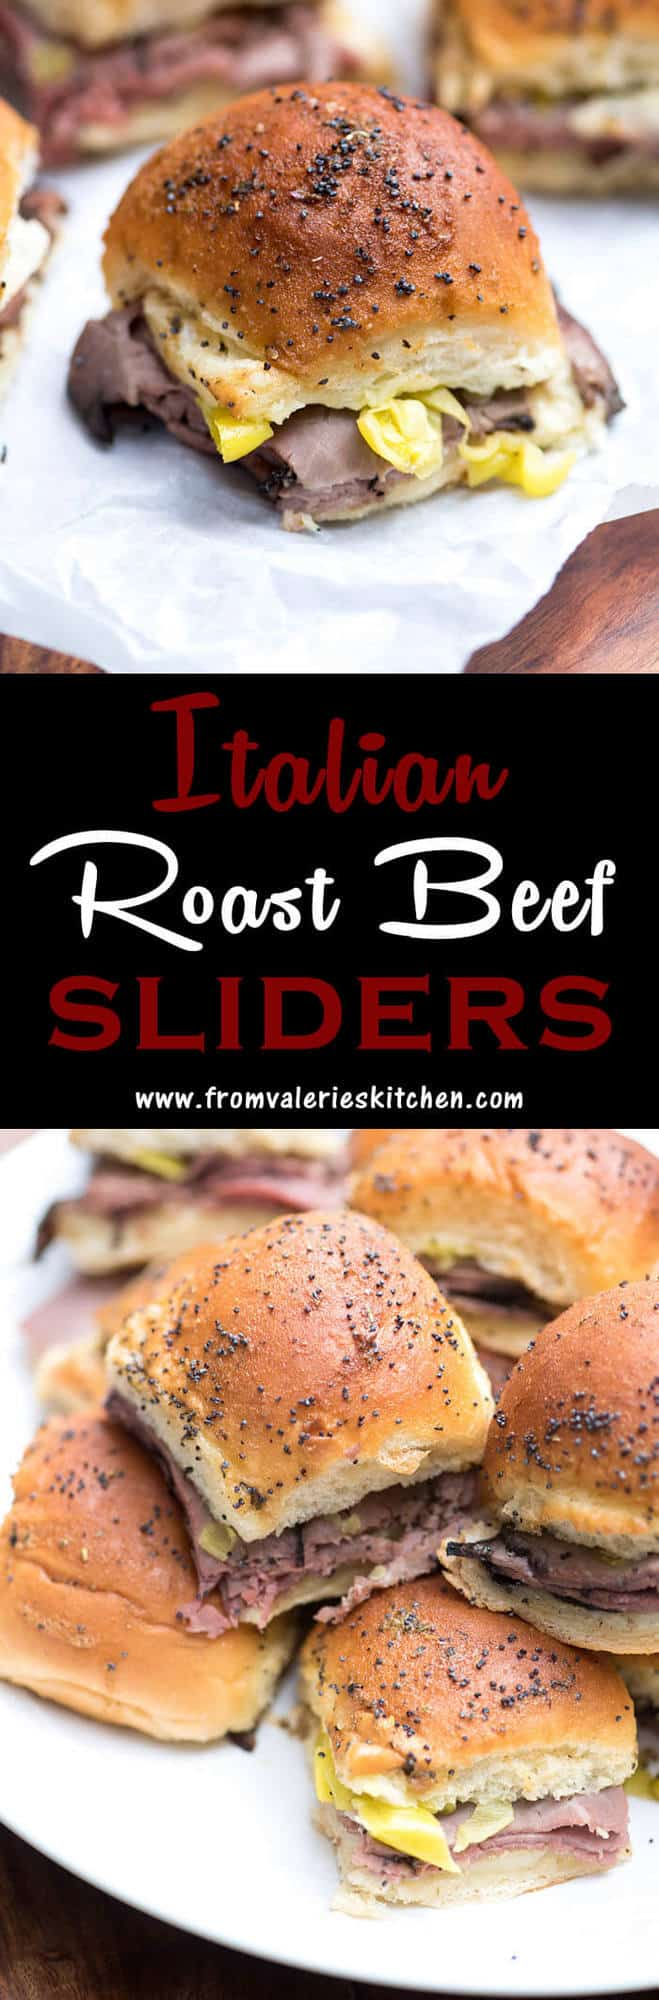 Flossy Small But Se Italian Roast Beef Sliders Involve Take Just Minutes Italian Roast Beef Sliders French Fried Onions Provolone Pepperoncini Roast Beef Sliders Fried Onions Roast Beef Sliders nice food Roast Beef Sliders